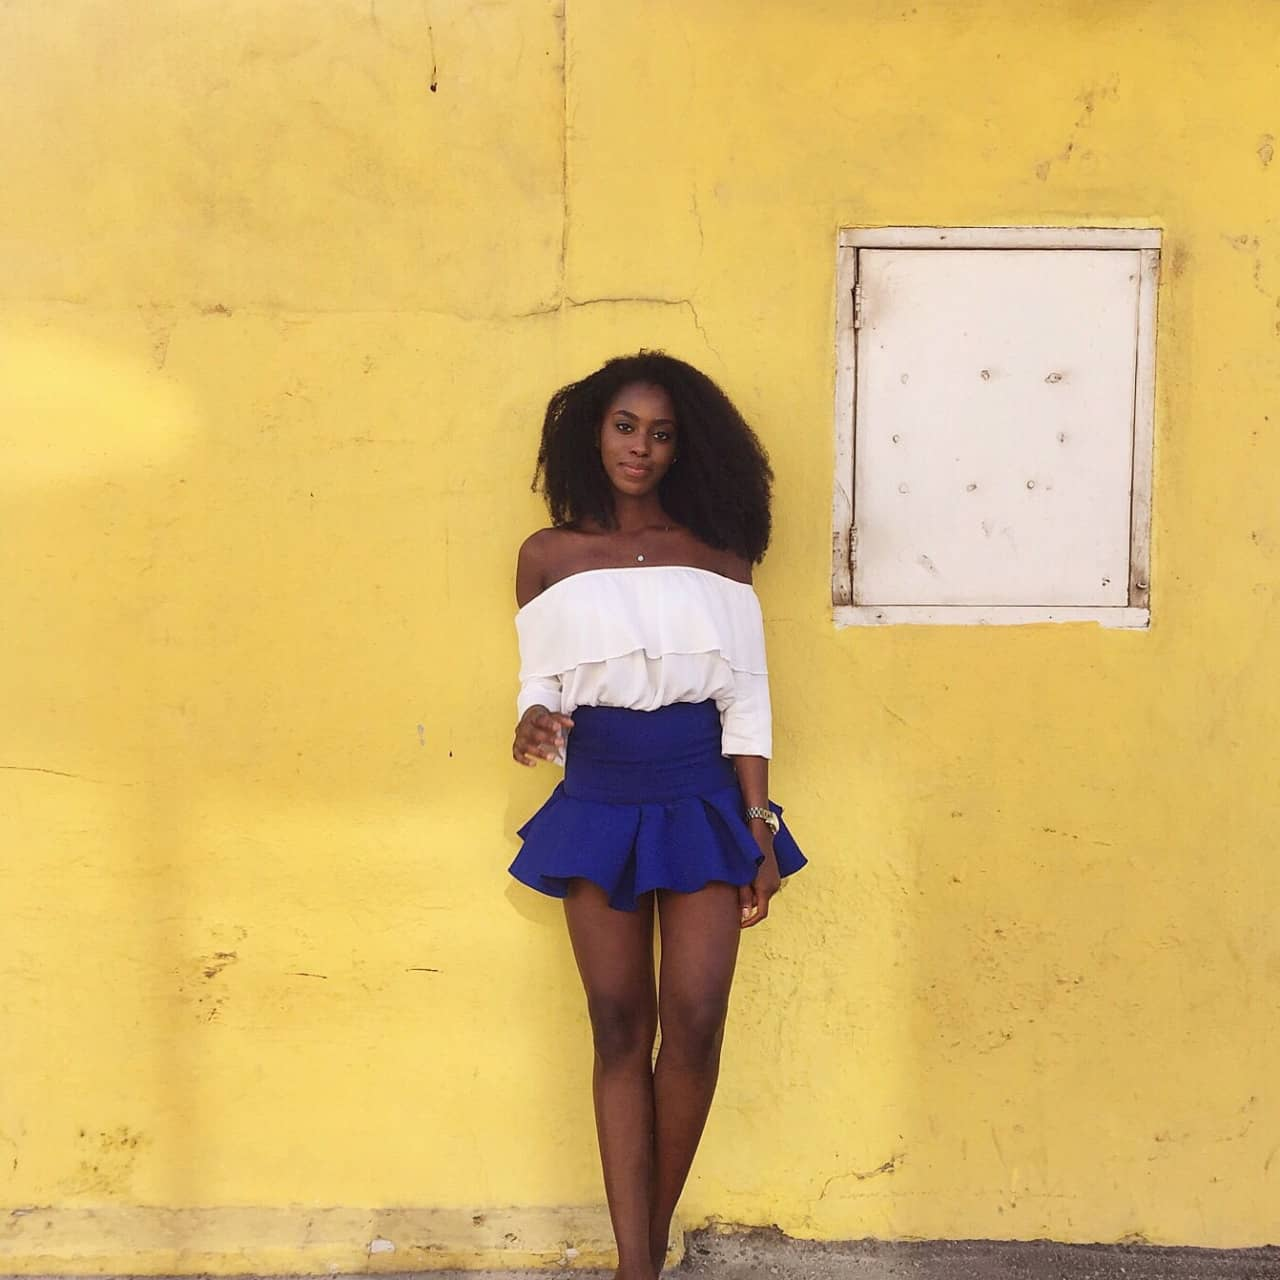 blogger's delight: lee litumbe of spirited pursuit | she leads africa